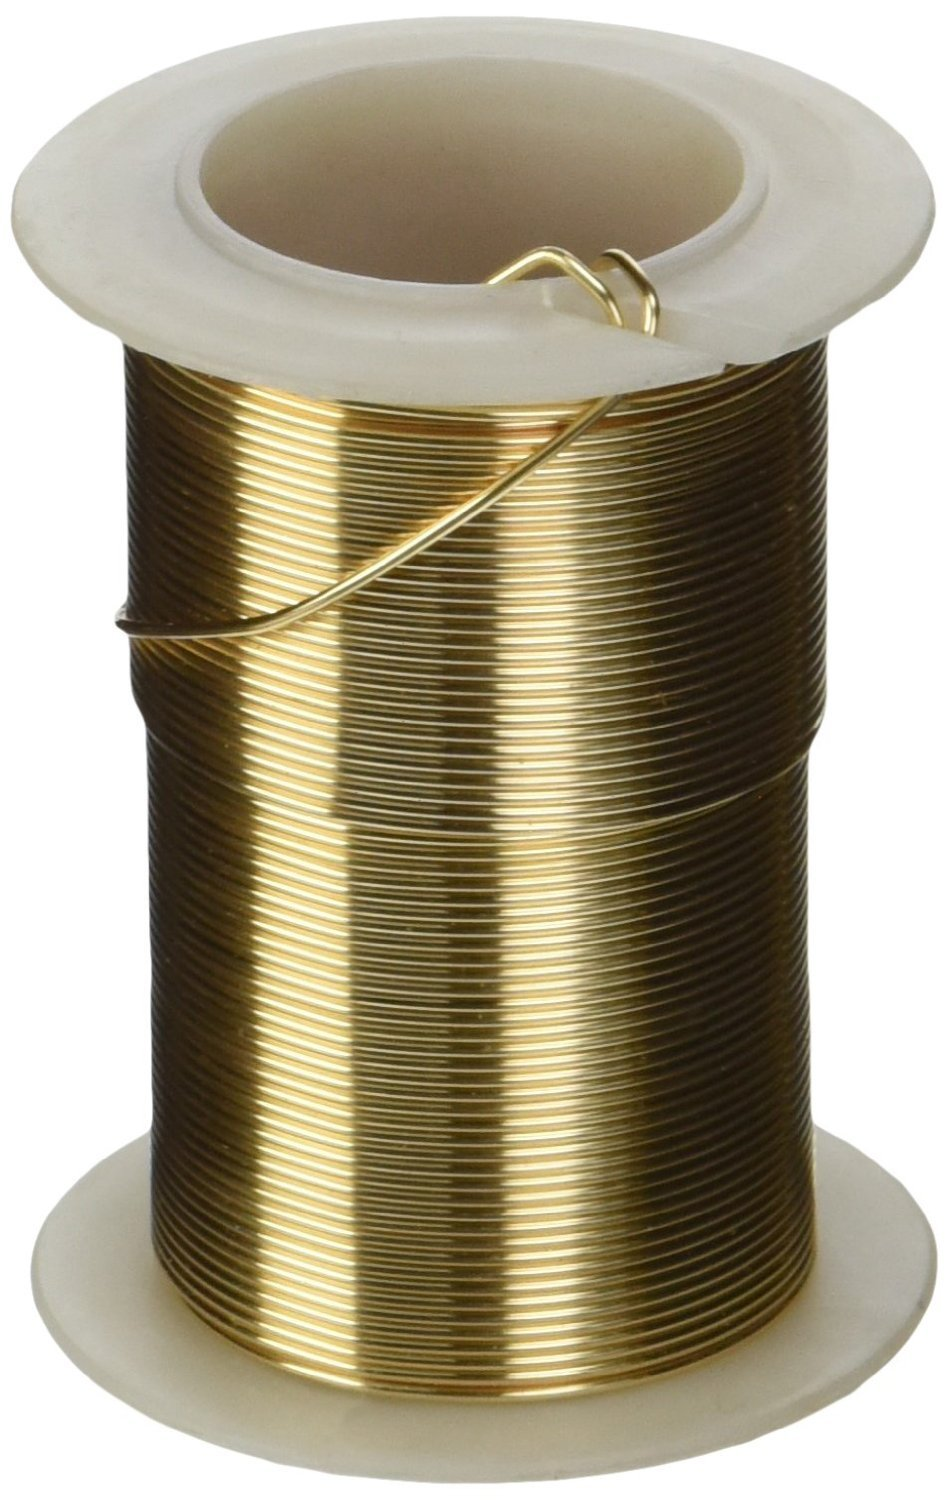 Darice Beading 20 Gauge 15yd-Gold Colored Copper Wire P32029-4